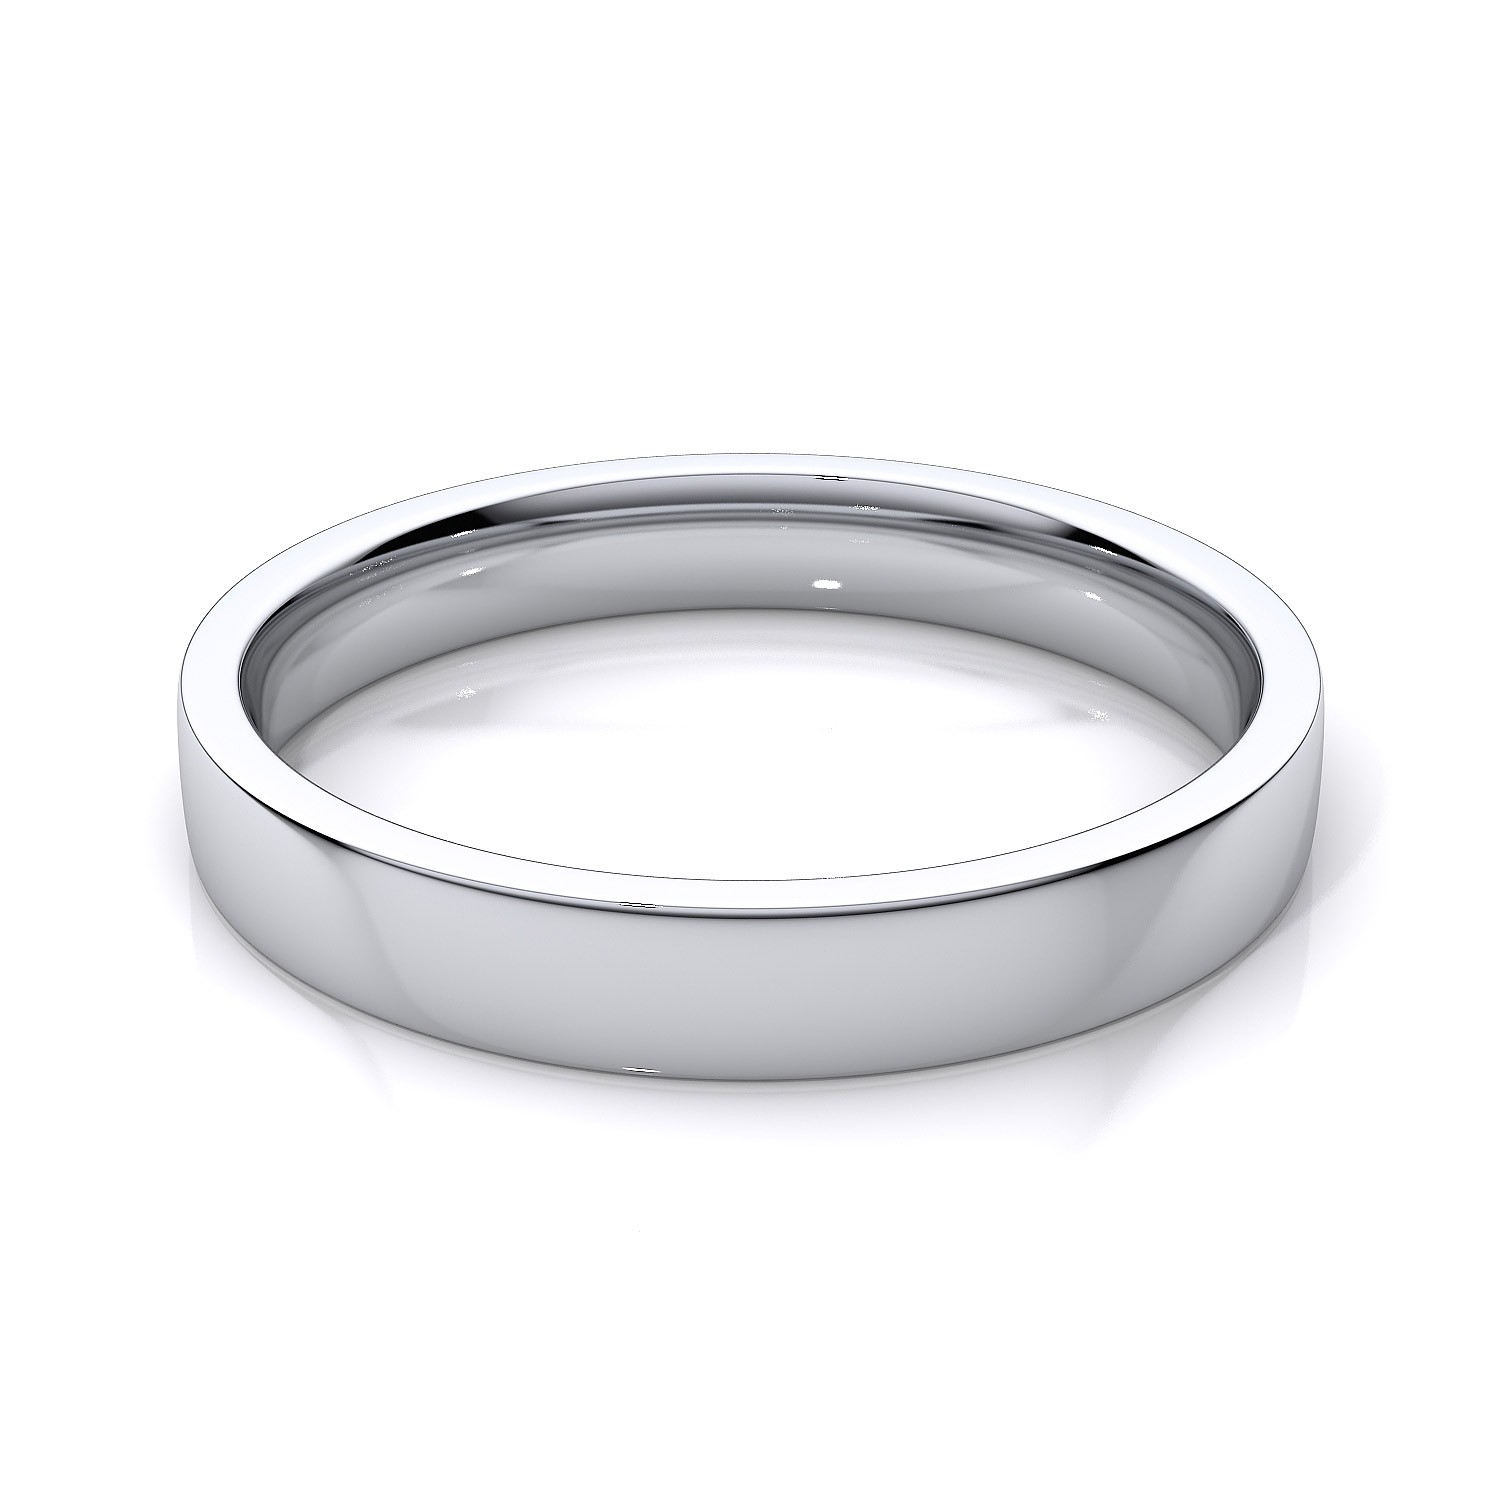 mens wedding bands s white christian silverscape band men designs products bauer img gold